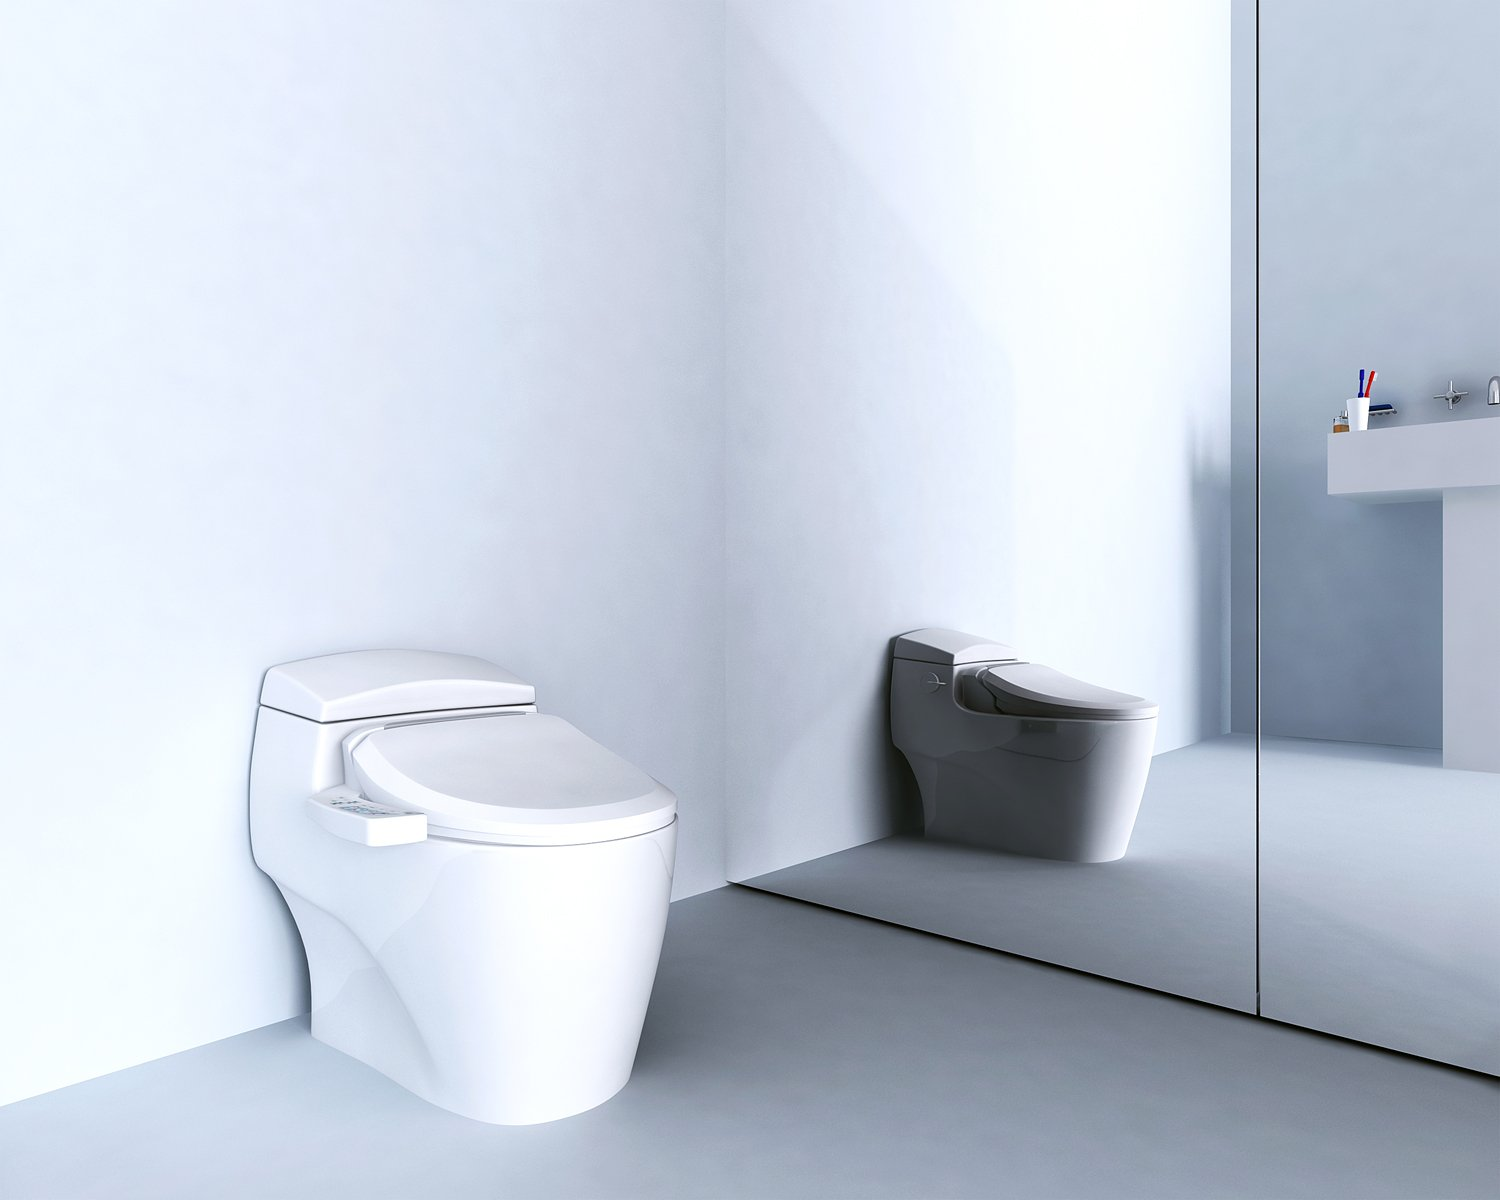 Bio Bidet Ultimate BB-600 Advanced Bidet Toilet Seat, Elongated White. Easy DIY Installation, Luxury Features From Side Panel, Adjustable Heated Seat and Water. Dual Nozzle Has Posterior and Feminine Wash by BioBidet (Image #5)